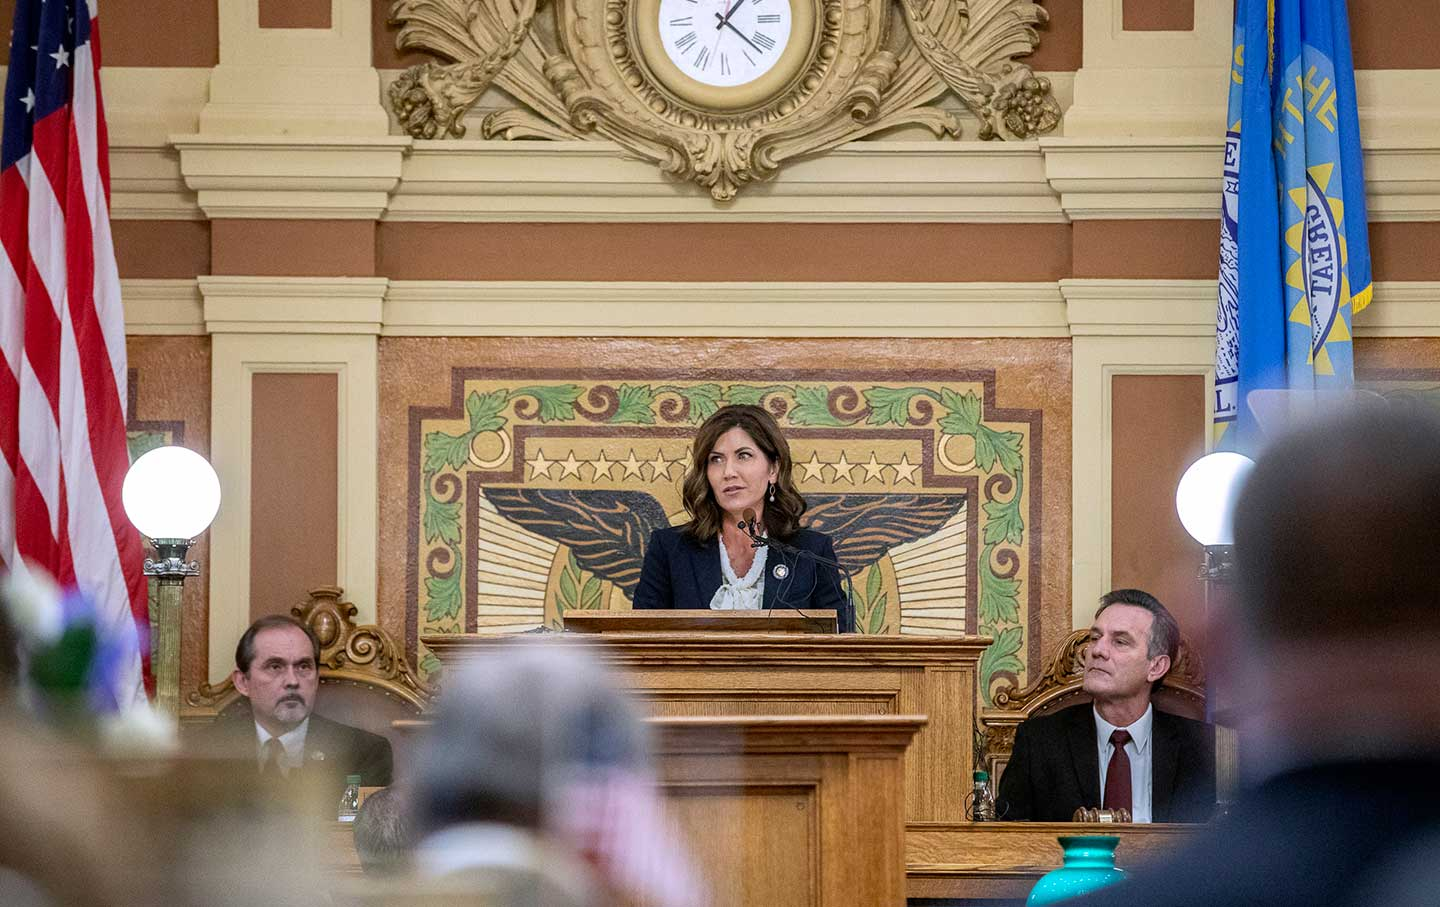 Governor of South Dakota Kristi Noem